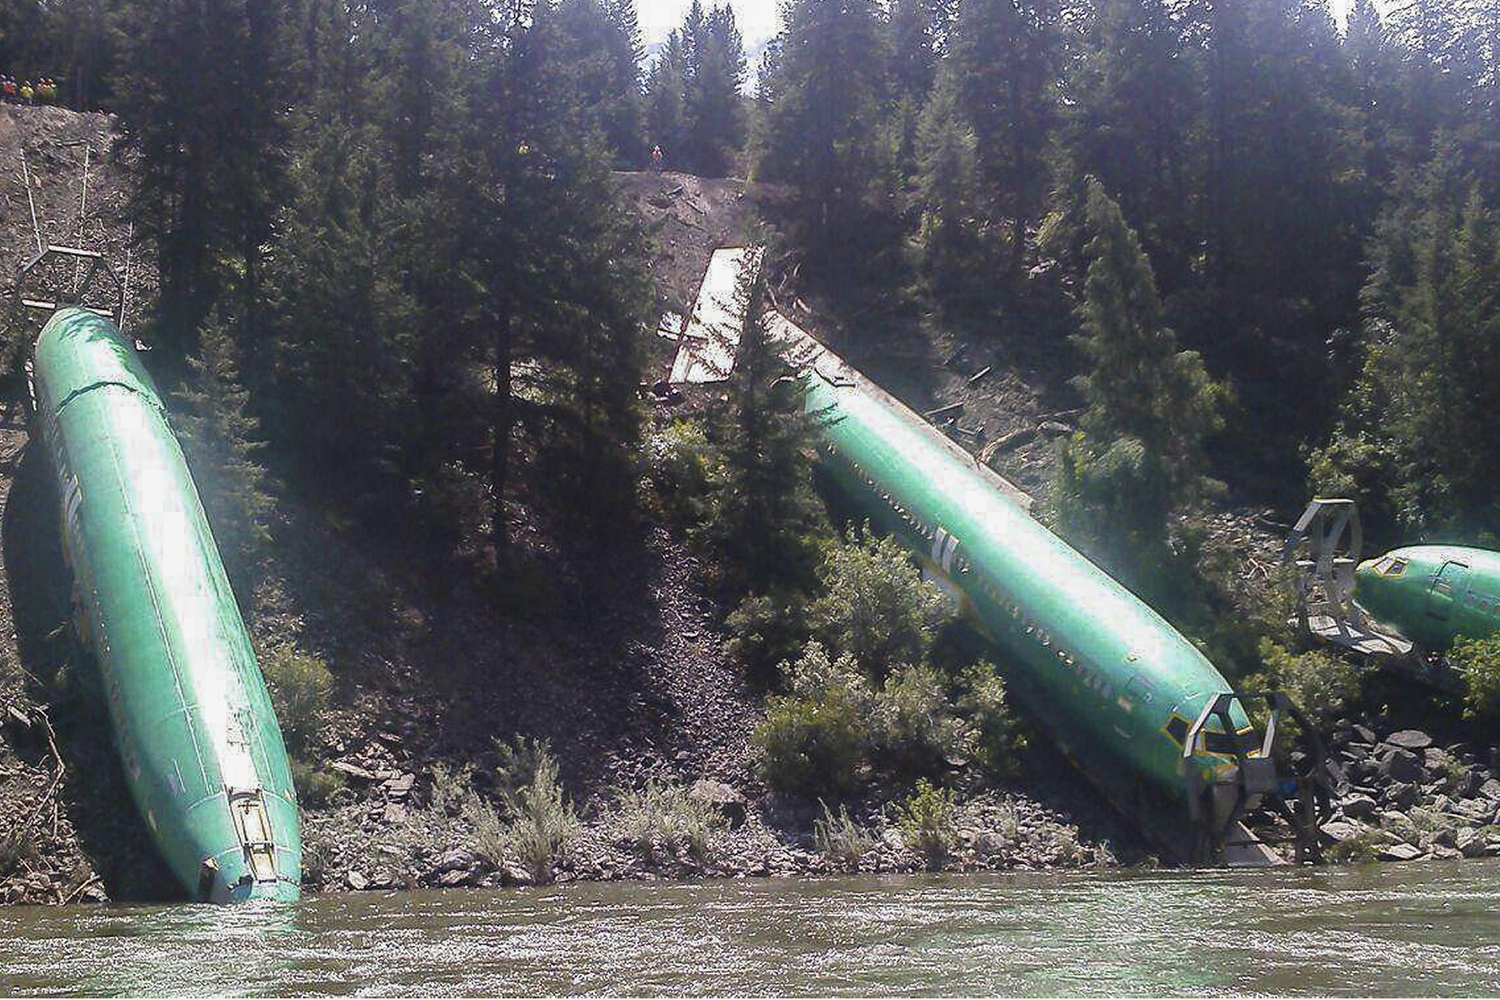 Jul. 6, 2014. The fuselages of three Boeing 737 aircraft around the Clark Fork River after the Montana Rail Link train they were being transported on derailed near Missoula, Montana.